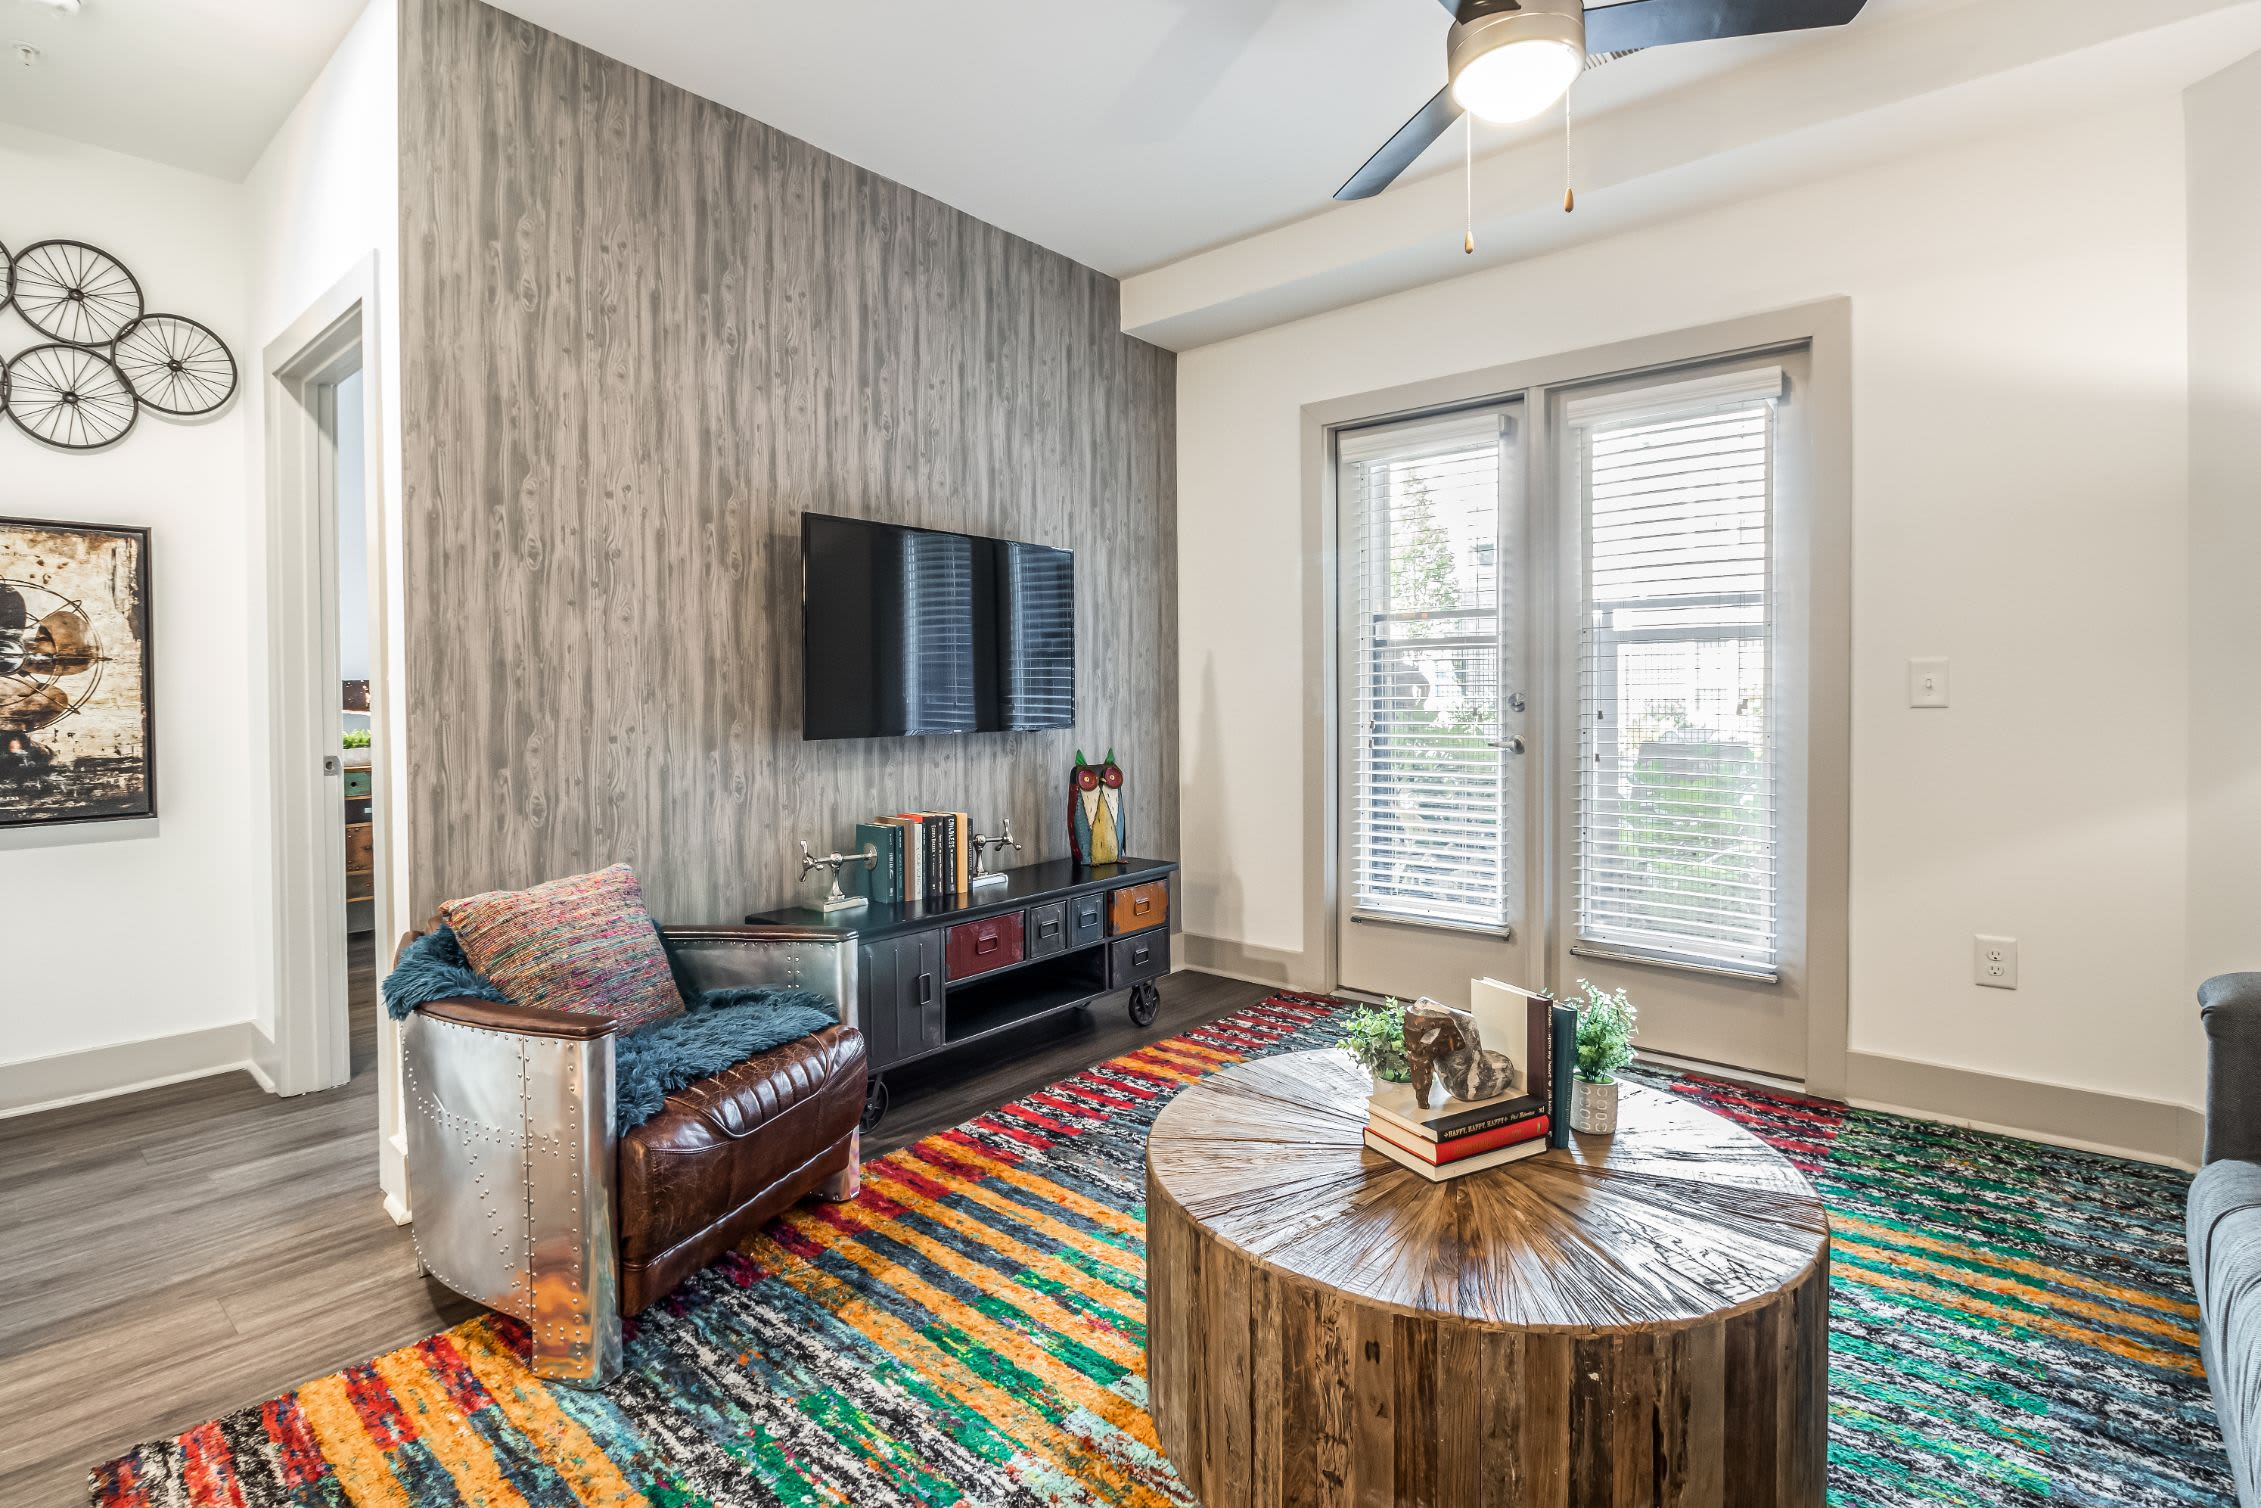 Living room with a large rug at Skyline West in Atlanta, Georgia